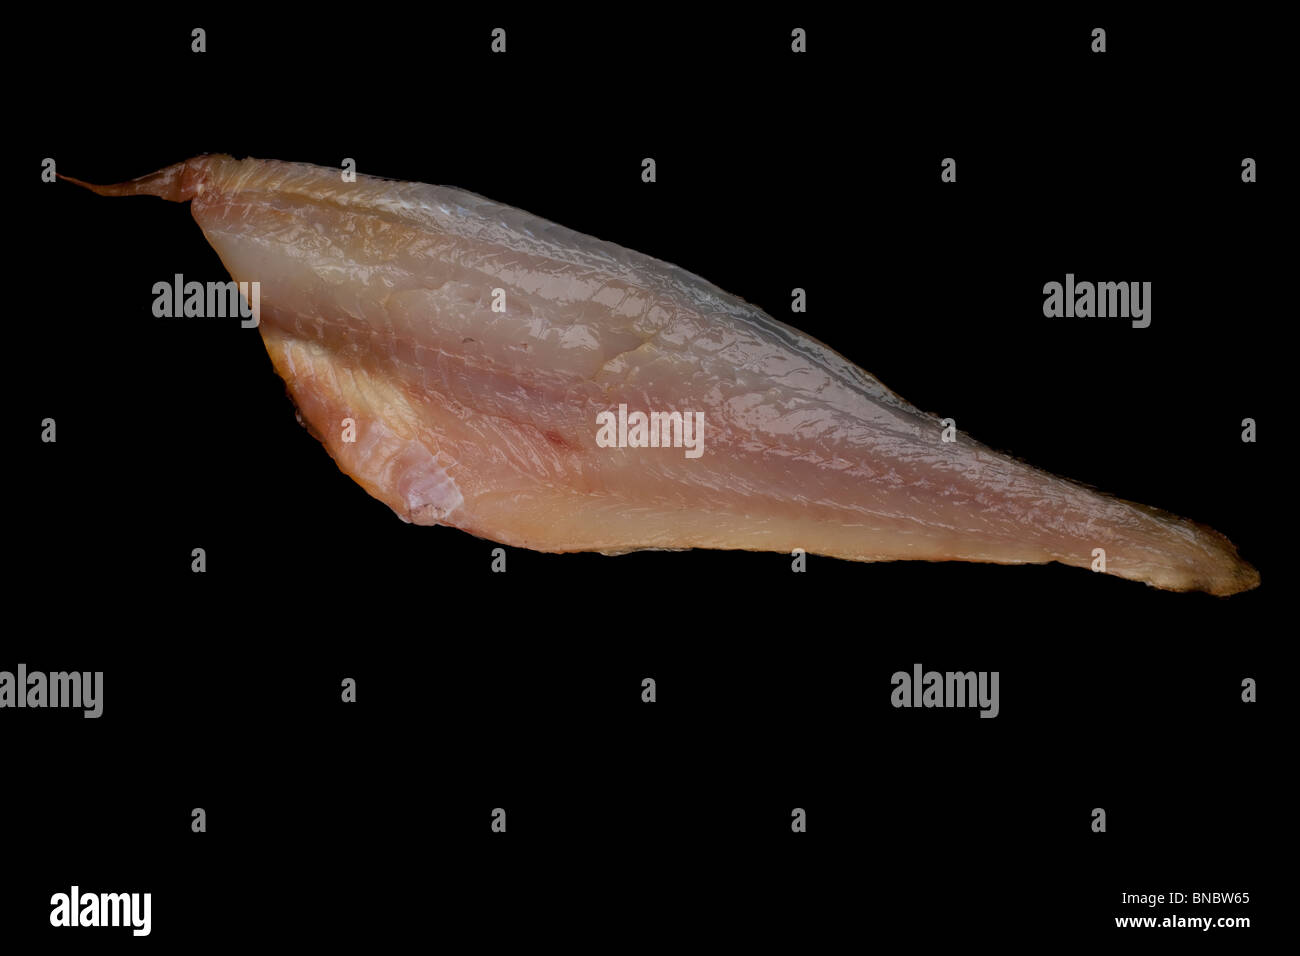 Haddock or offshore hake fillet distributed on both sides of the North Atlantic. - Stock Image